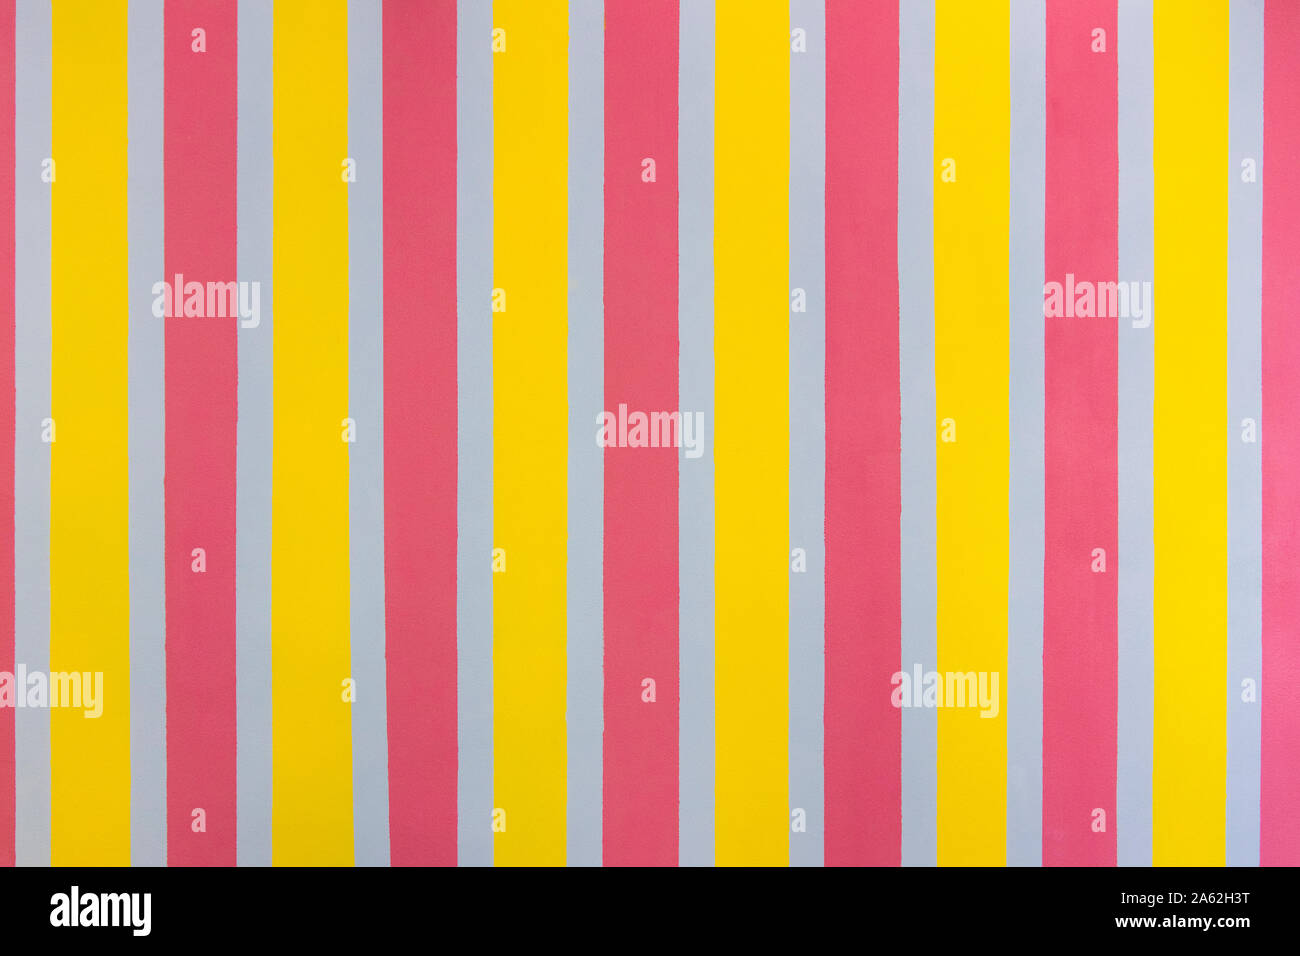 Bright rough wall painted in stripes. Striped seamless pattern with vertical stripes of pink, gray and yellow. Stock Photo